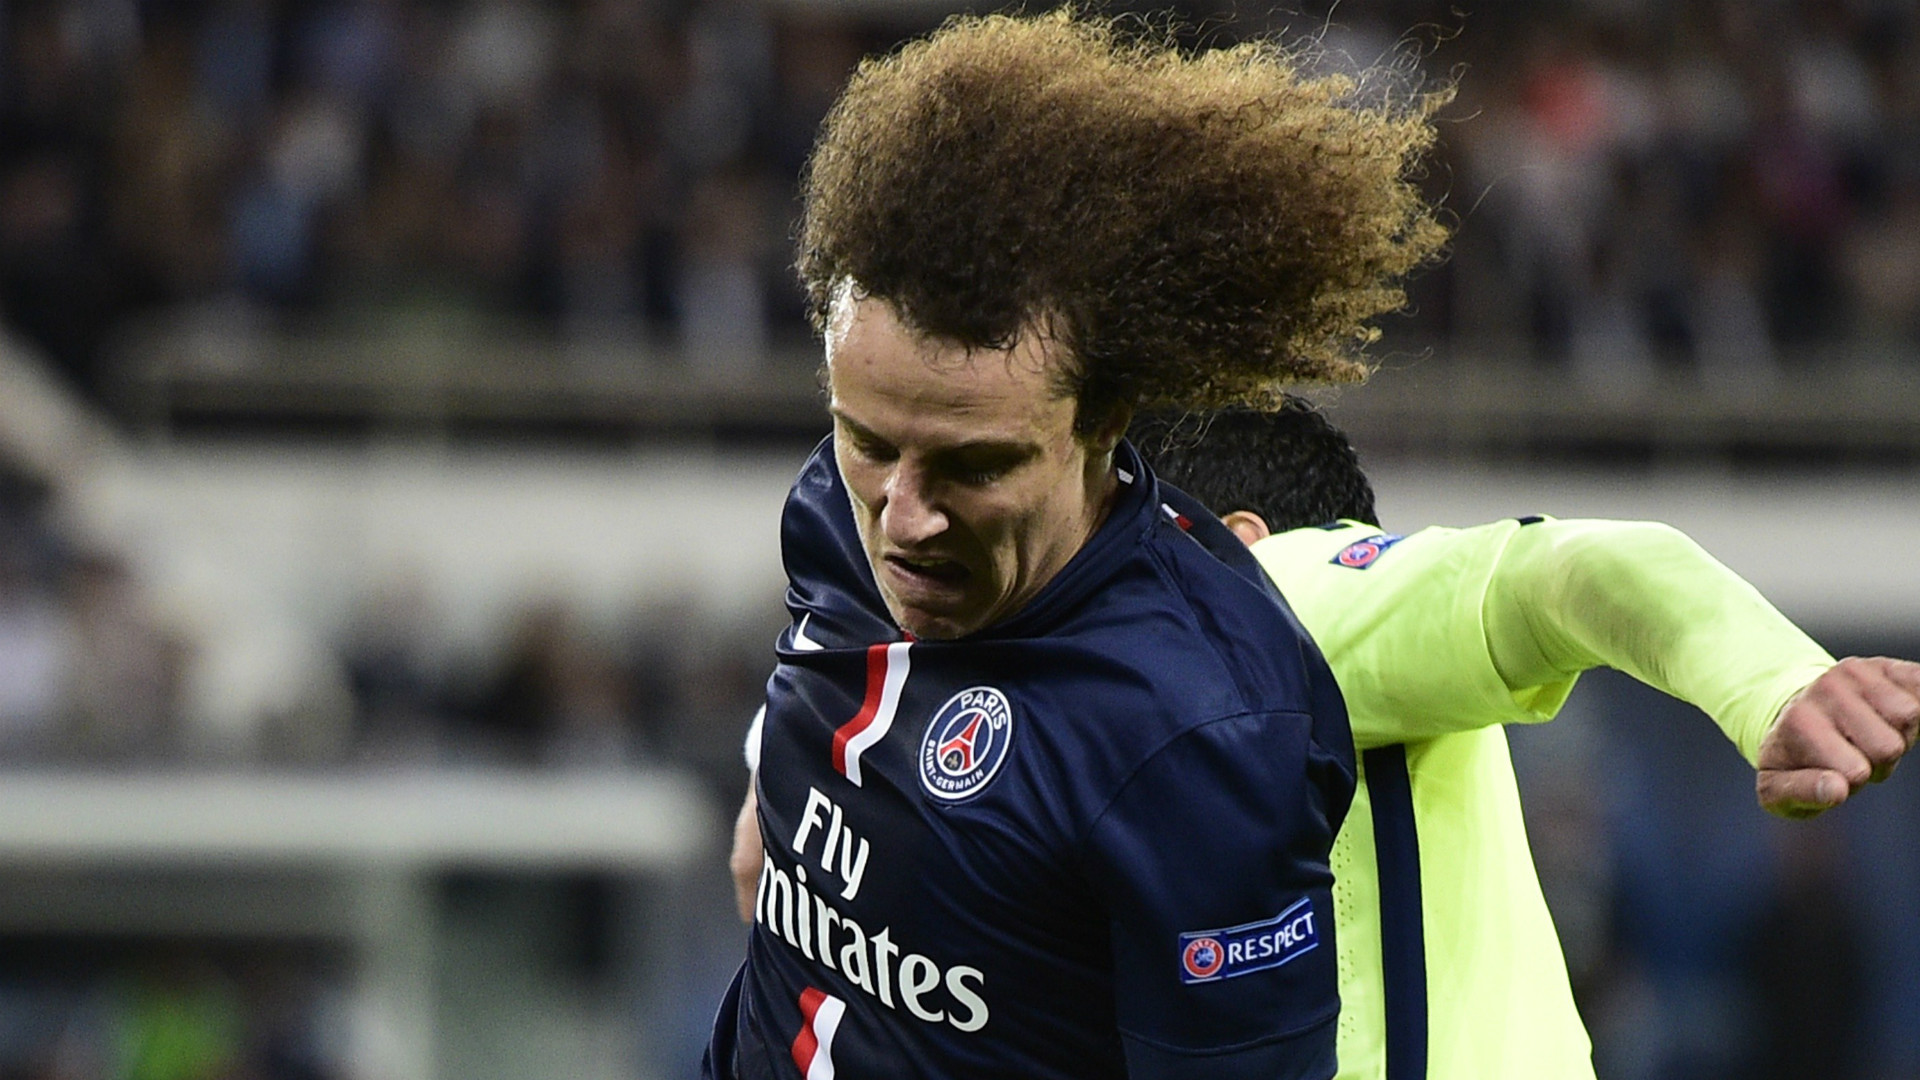 David Luiz's mum defends under-fire PSG man